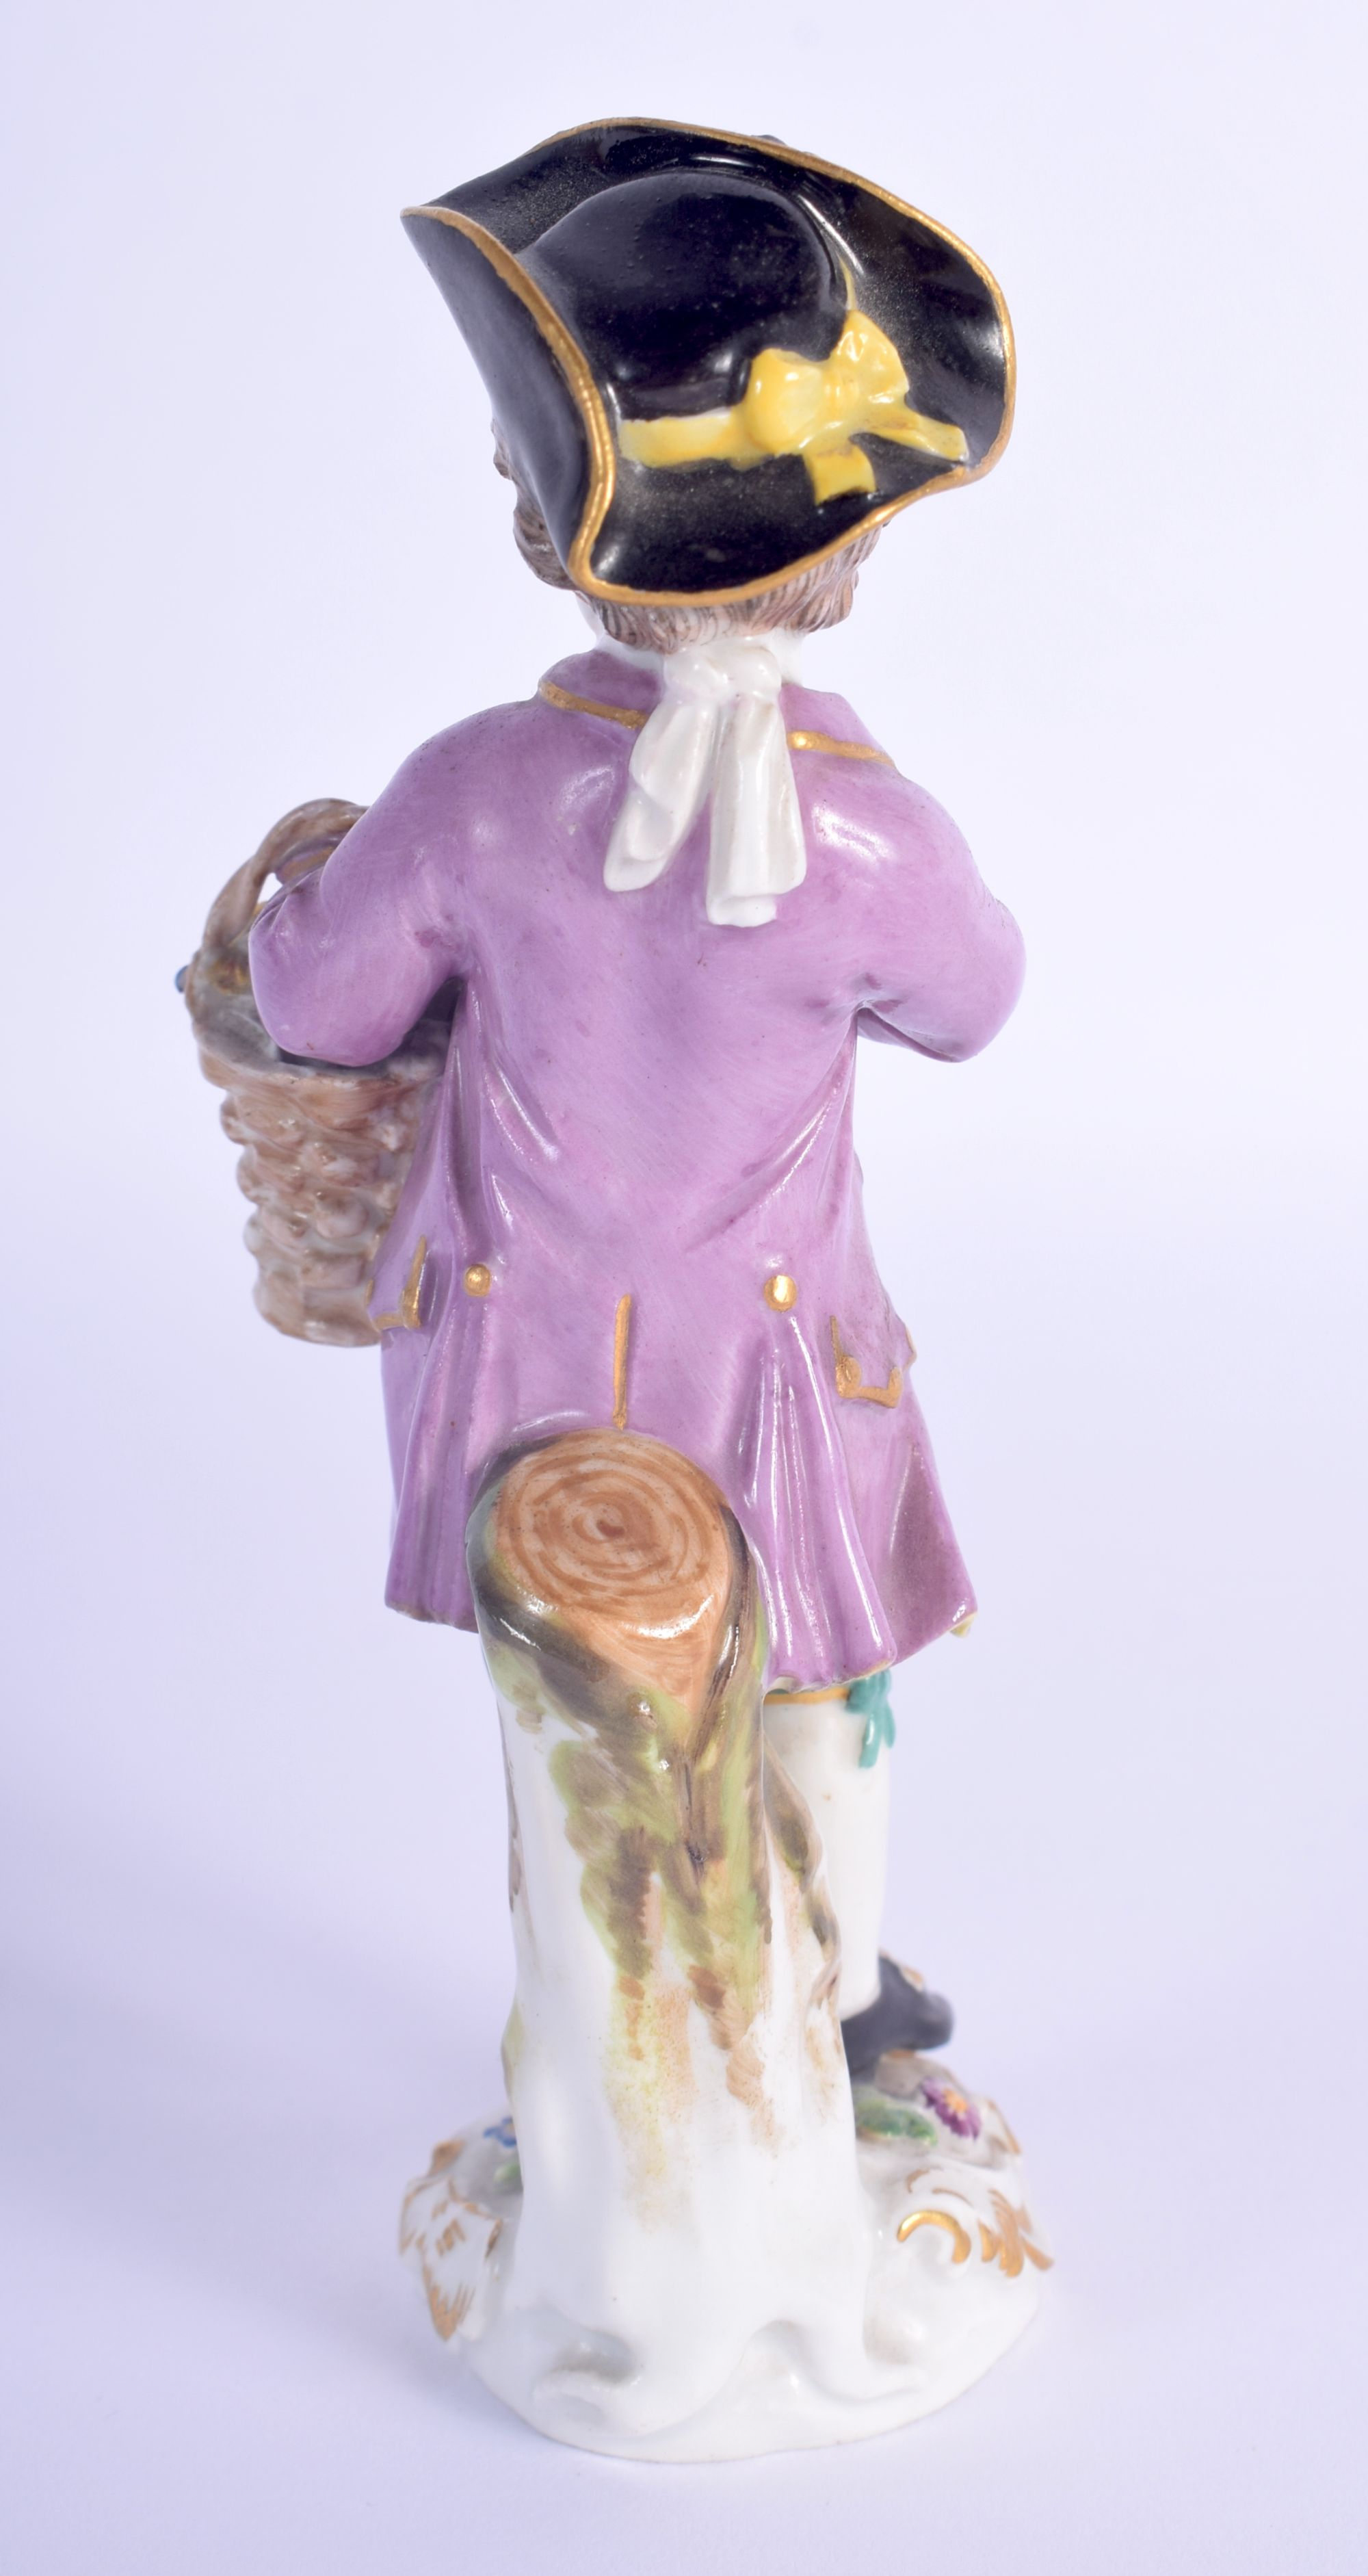 AN ANTIQUE MEISSEN PORCELAIN FIGURE OF A STANDING MALE modelled holding a basket of flowers. 13 cm h - Image 2 of 3